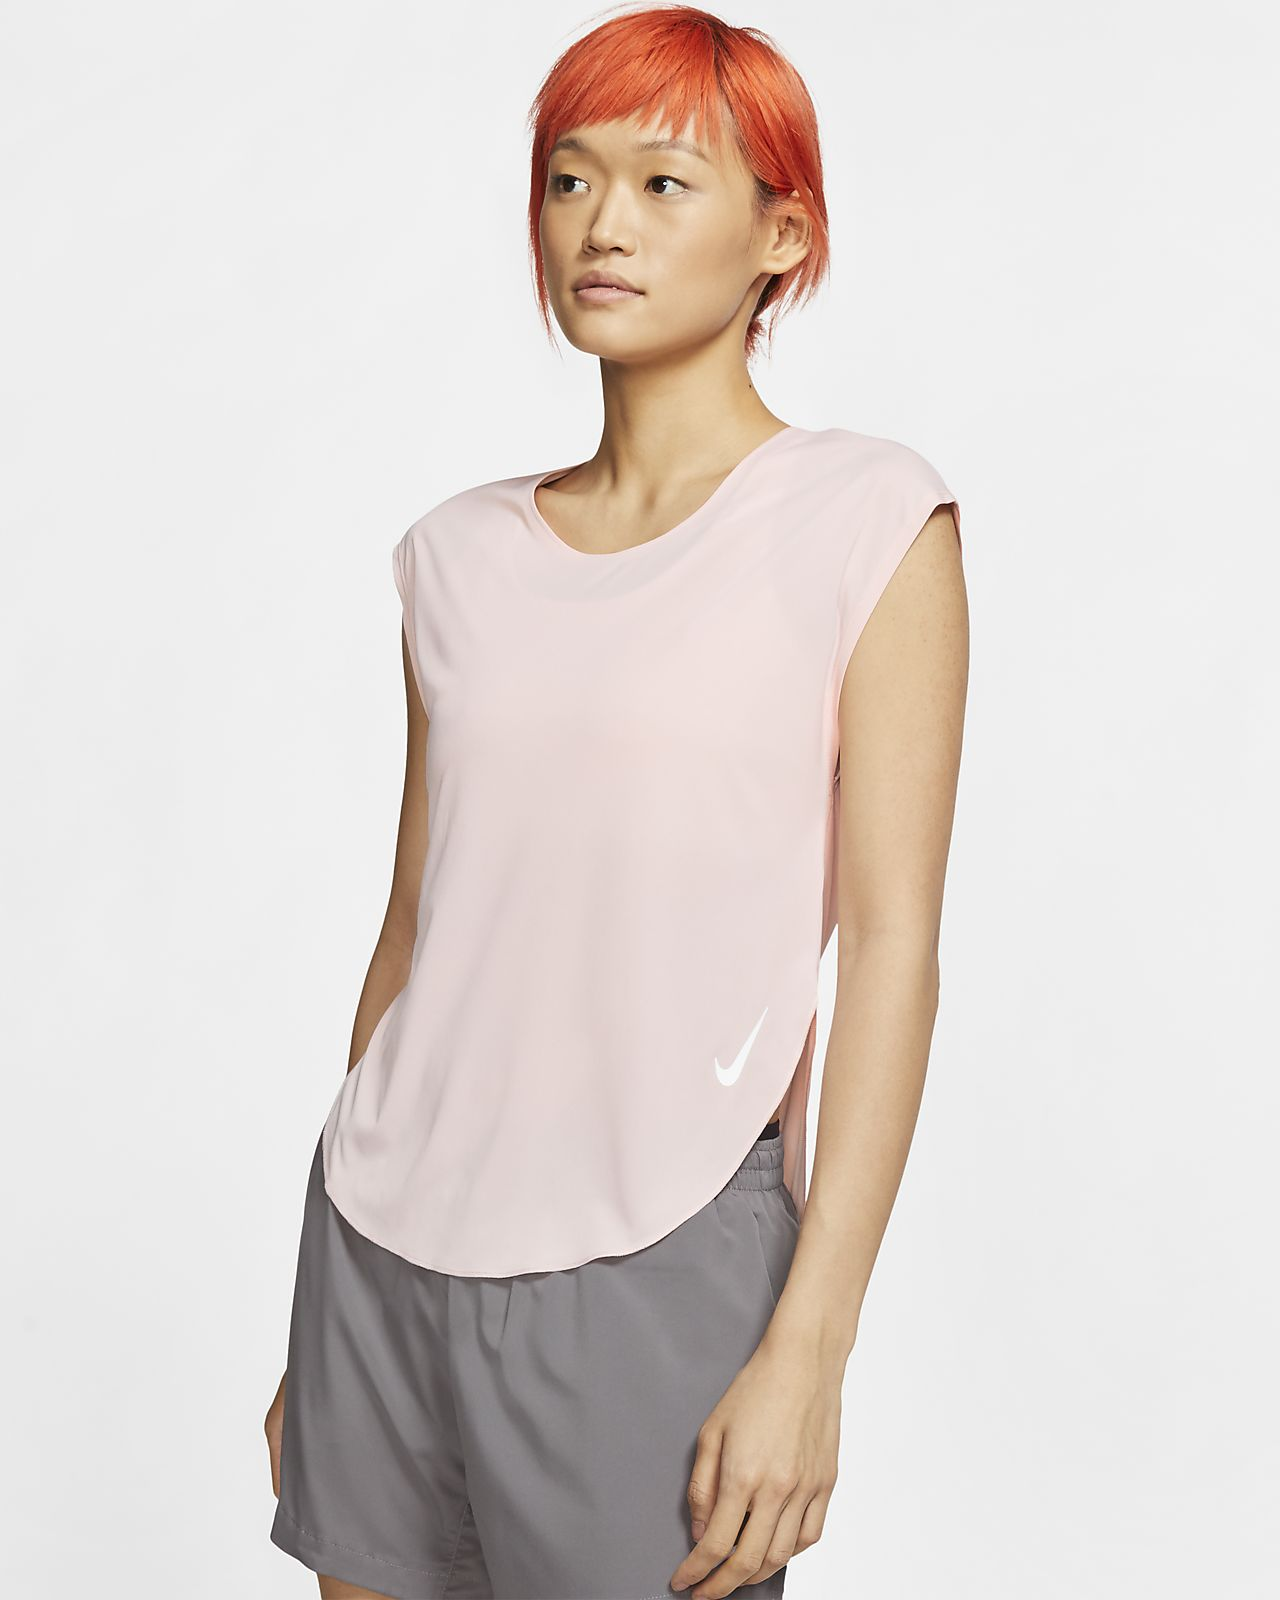 Nike Women's Running Top